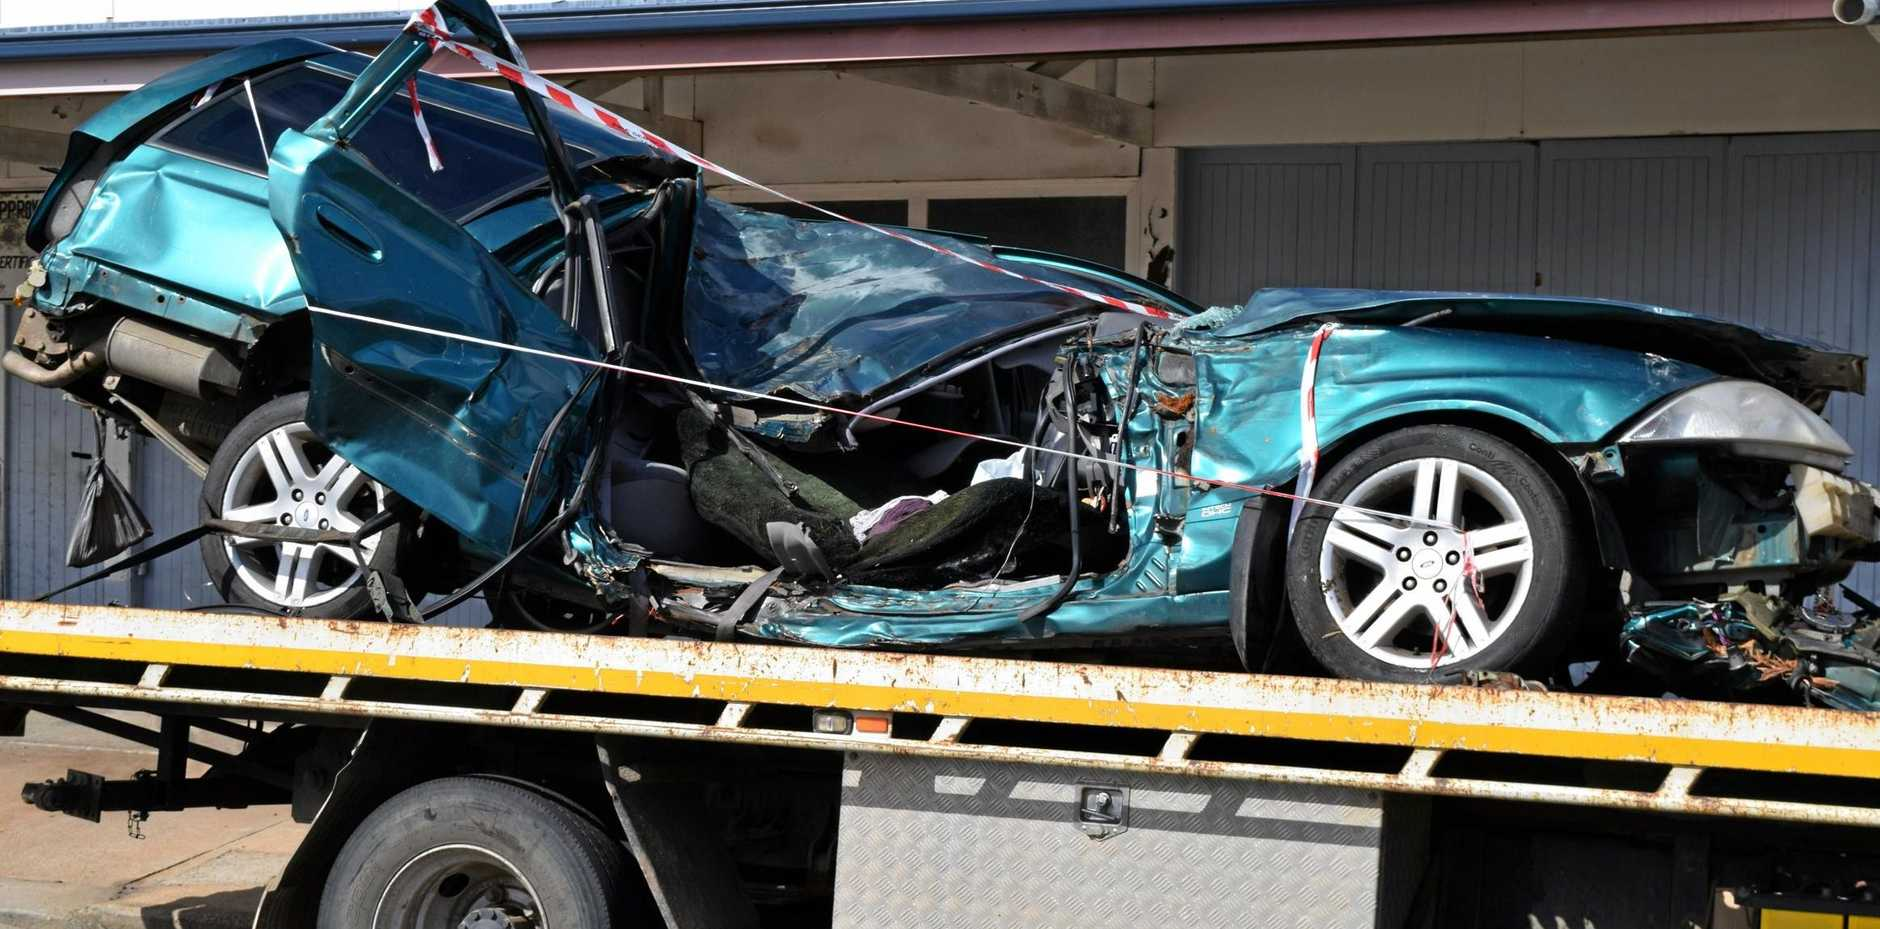 Police are investigating a serious, single vehicle traffic crash that occurred in Gayndah.